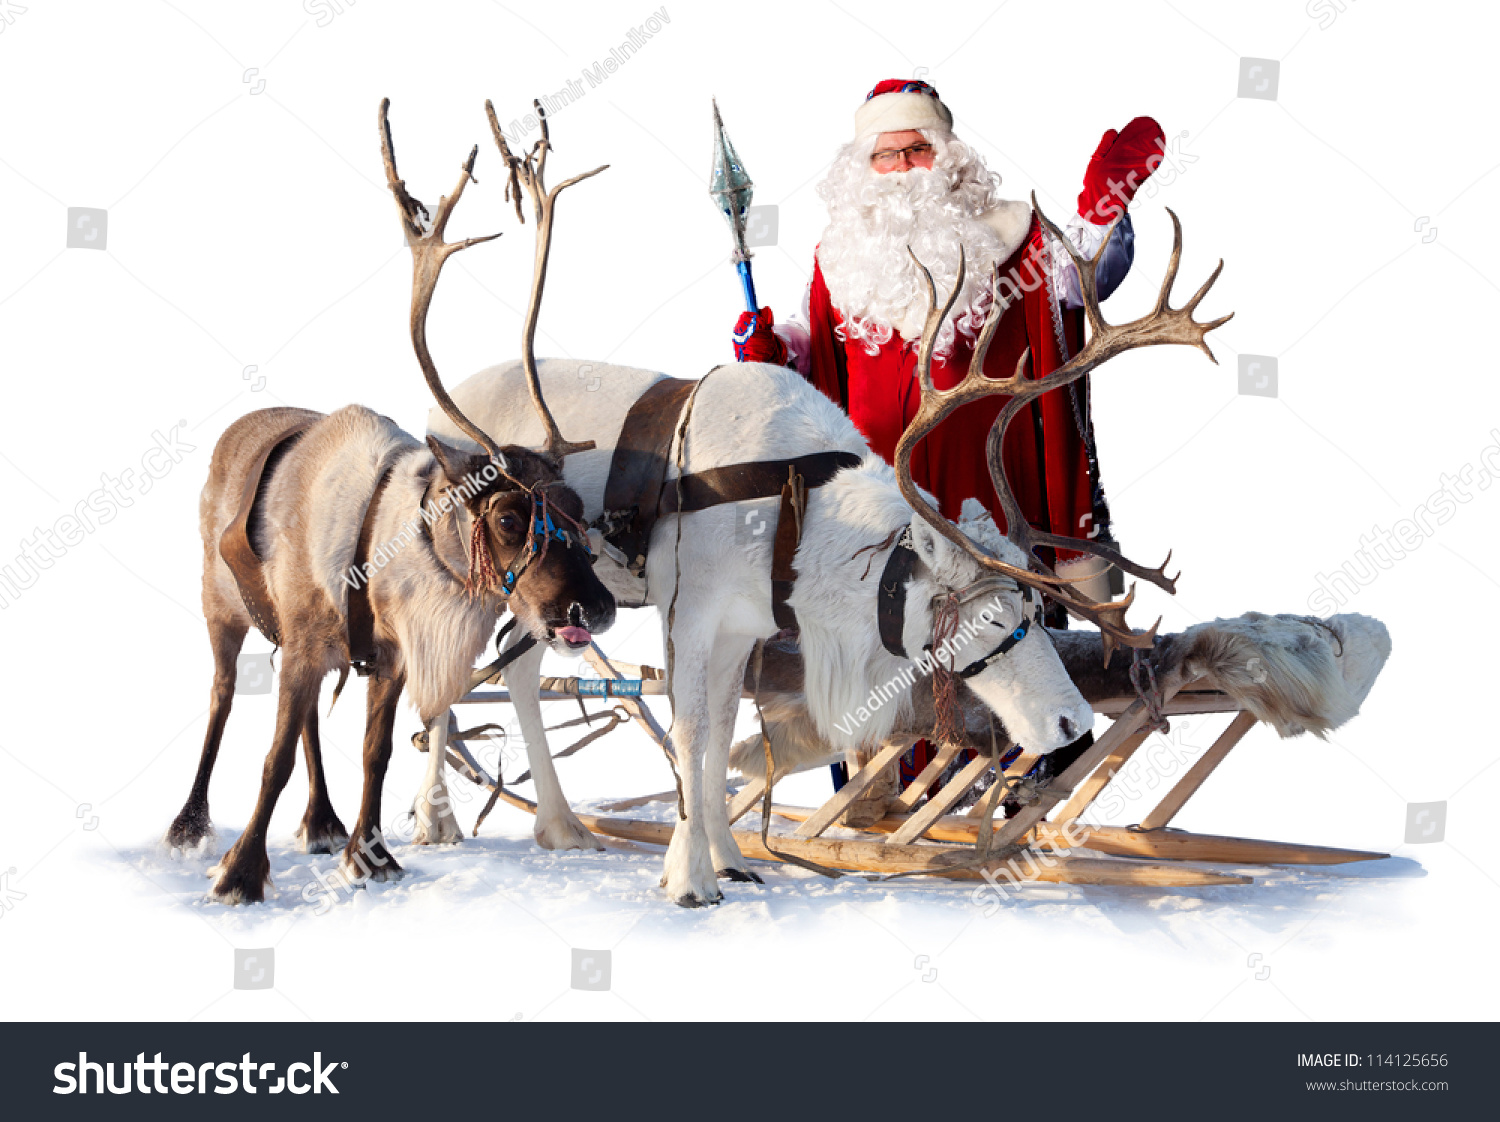 Santa claus near his reindeers harness stock photo